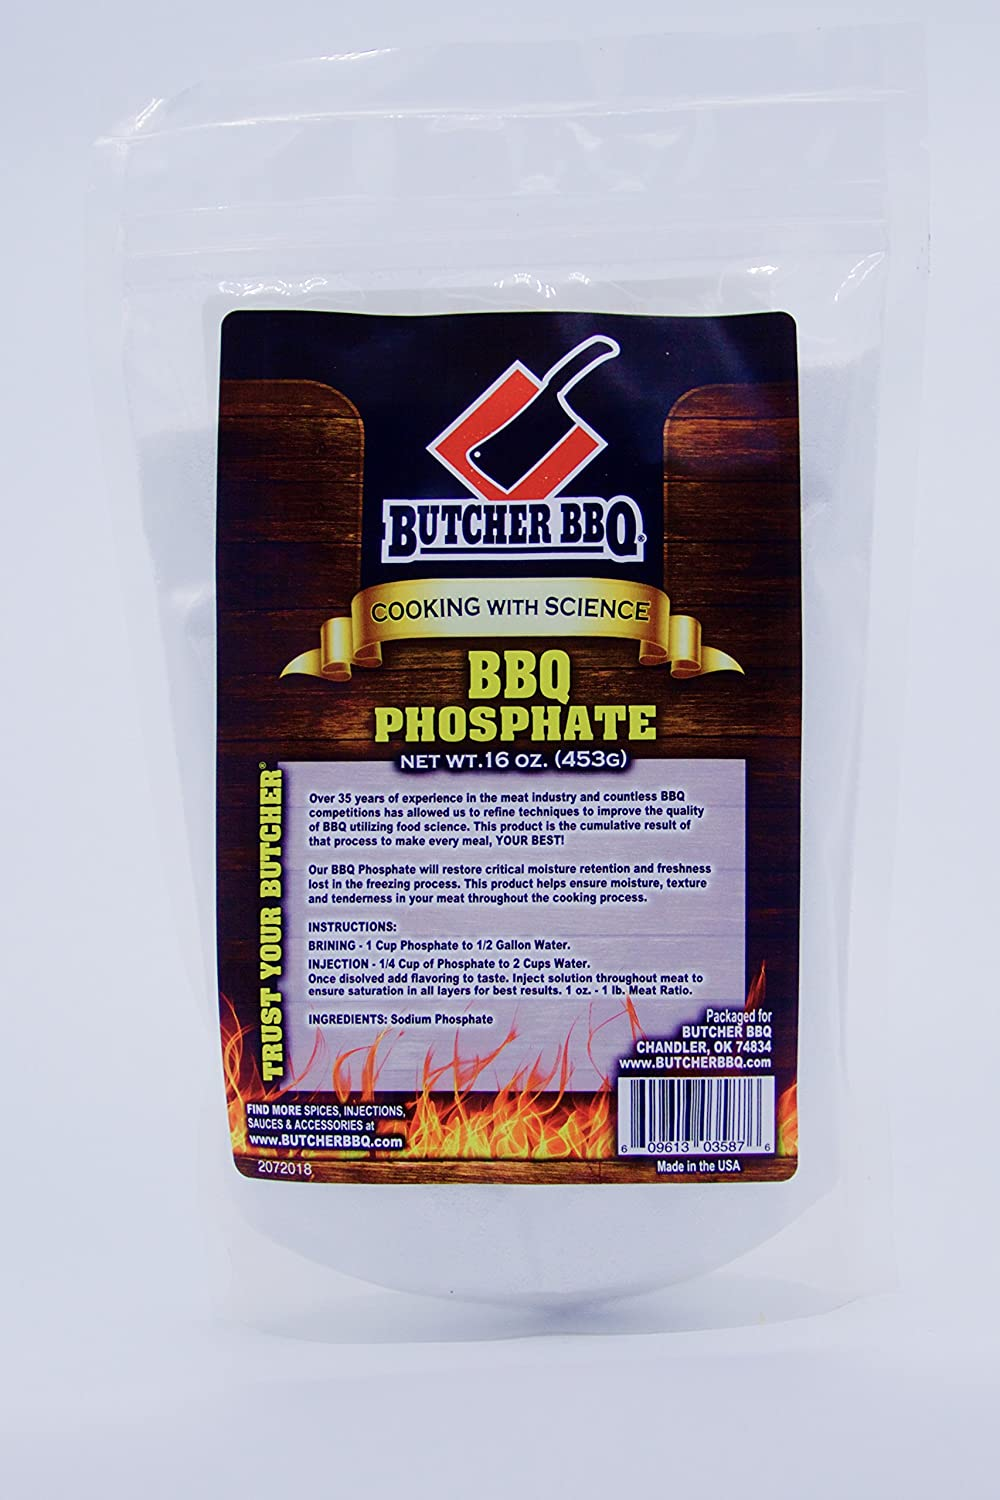 BUTCHER BBQ Phosphate Barbeque Seasoning Gluten Free | Msg Free1 Pound